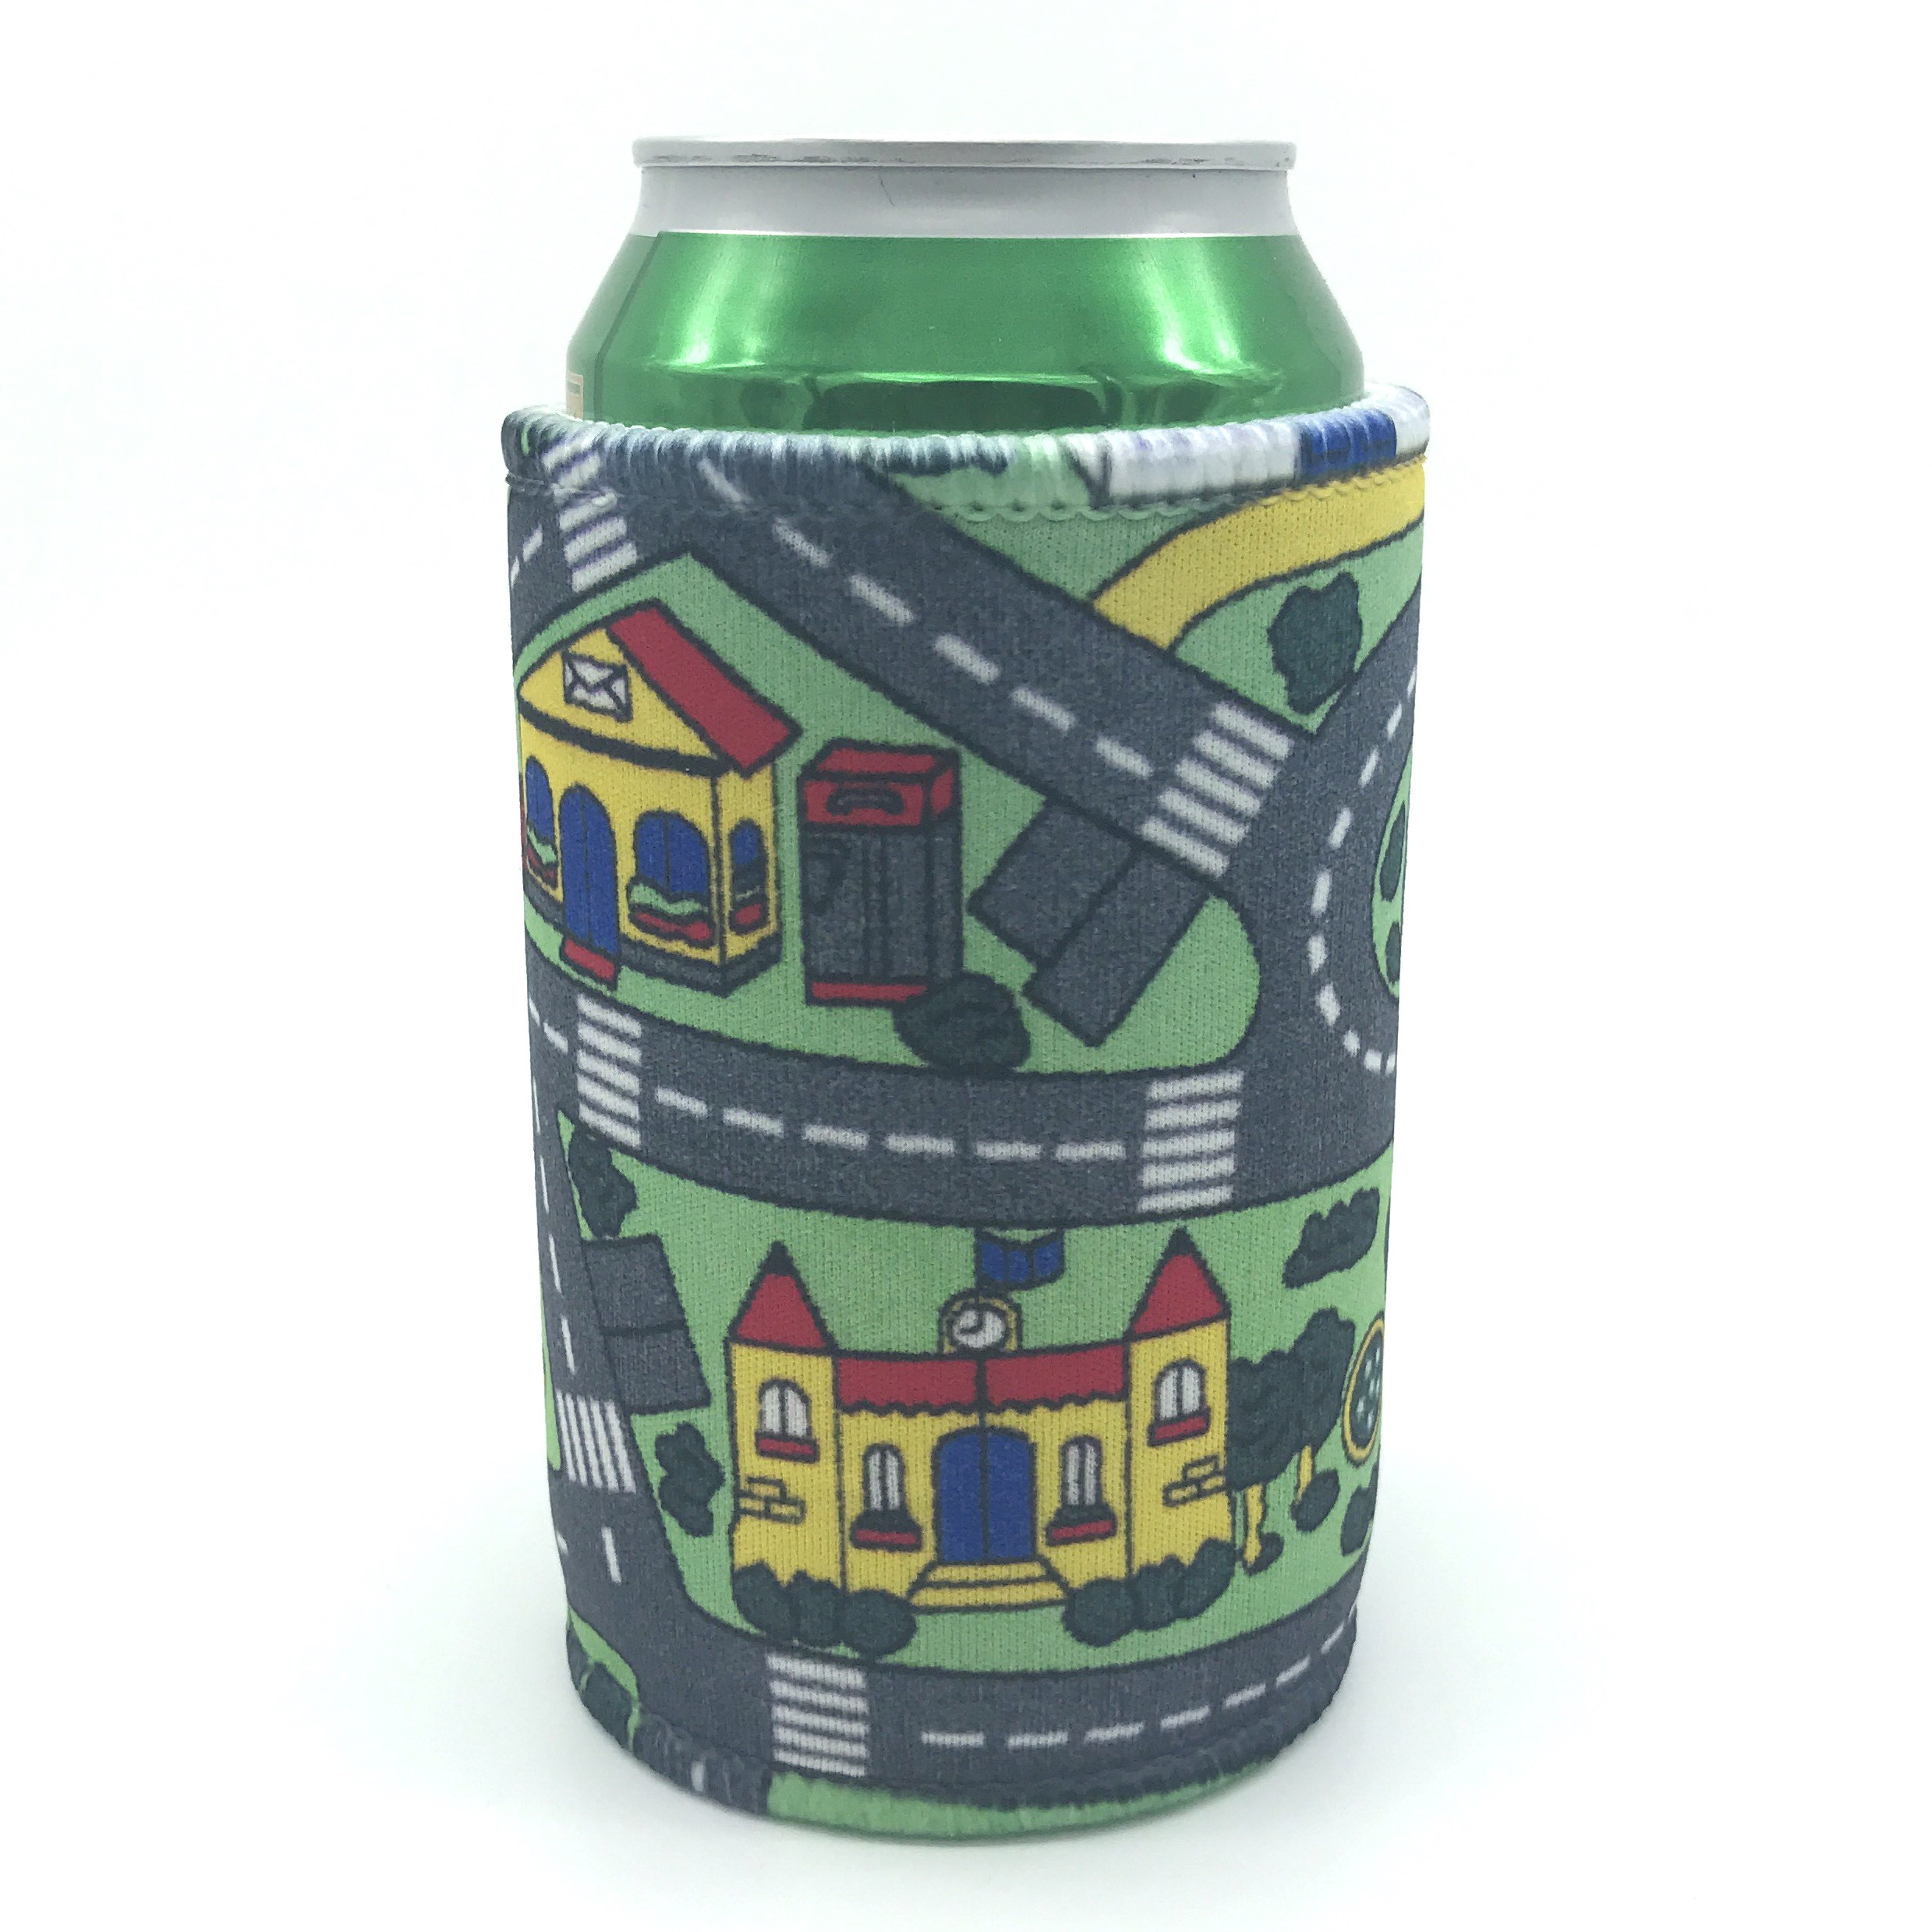 PLAY MAT STUBBY HOLDER